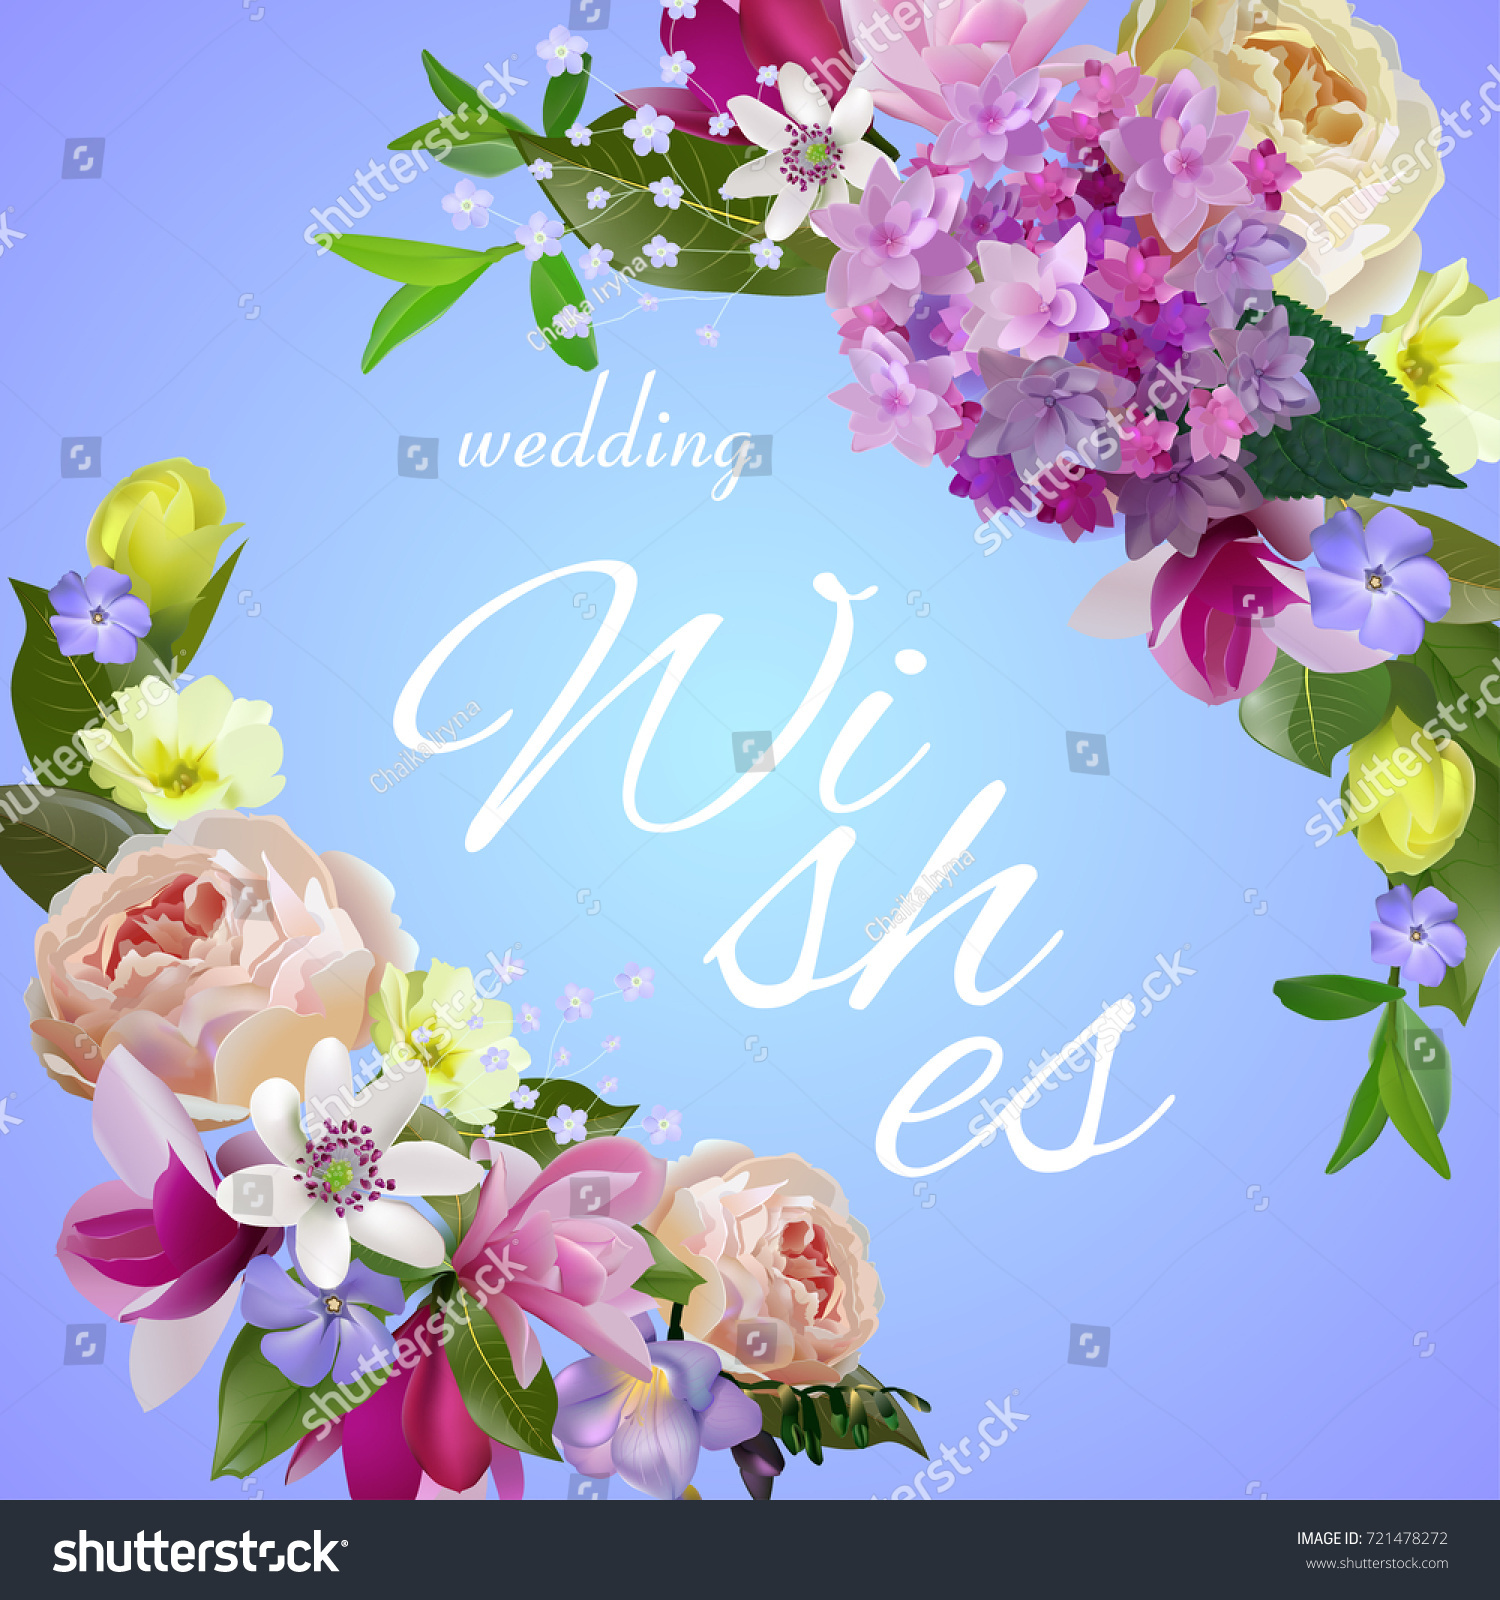 Wedding Wishes Greeting Card Wreath Flowers Stock Vector Royalty